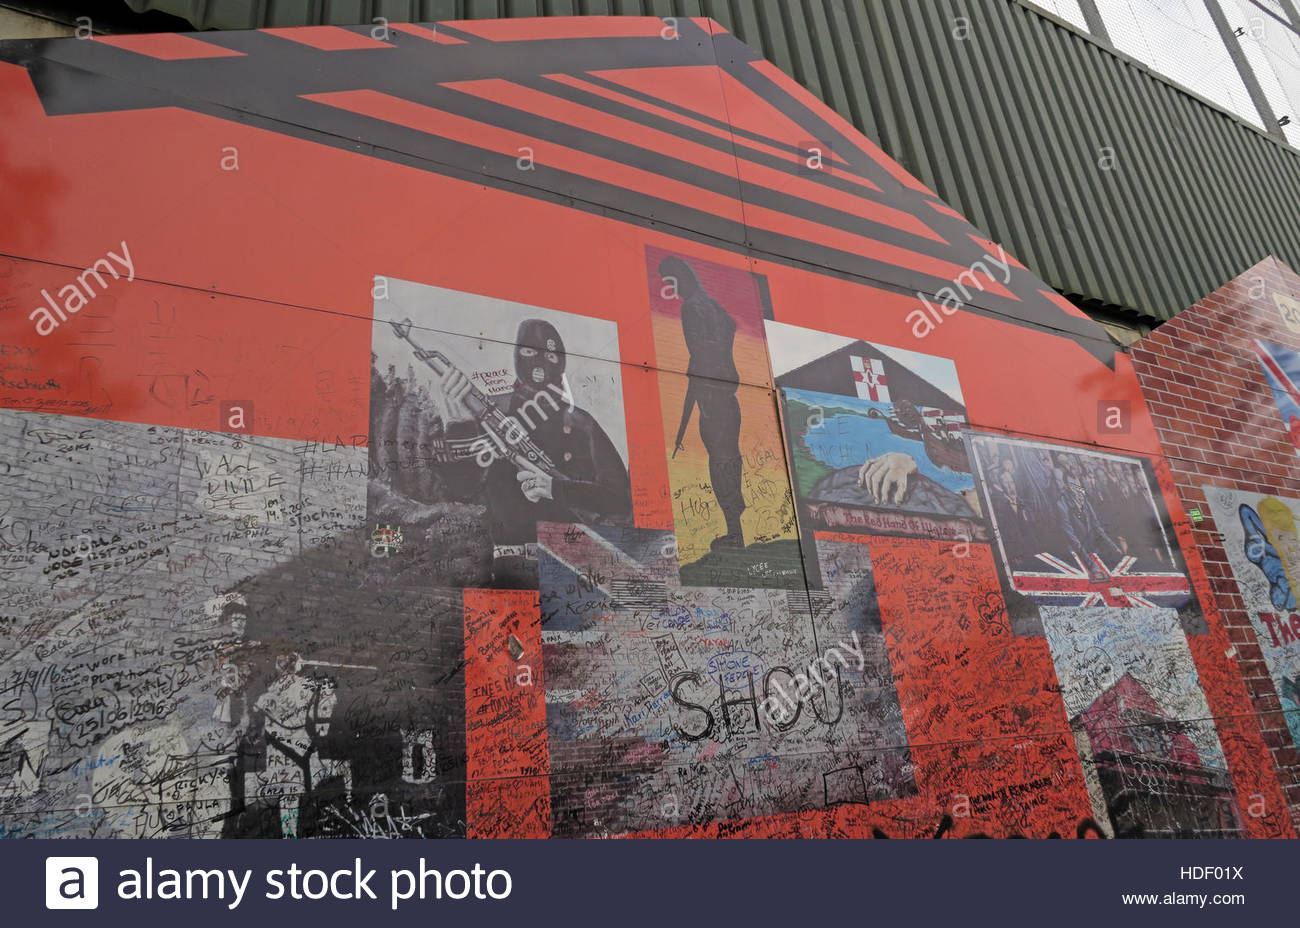 Northern Ireland,Peace,Wall,Cupar way,West Belfast,Belfast,Irish,art,artworks,artwork,Berlin wall,GoTonySmith,@HotpixUK,Tony,Smith,UK,GB,Great,Britain,United,Kingdom,Irish,British,Ireland,problem,with,problem with,issue with,NI,Northern,Northern Ireland,Belfast,City,Centre,Art,Artists,the,troubles,The Troubles,Good Friday Agreement,Peace,honour,painting,wall,walls,tribute,Unionist,unionism,Protestant,Catholic,republican,Sinn Fein,community,Fight,Justice,West,Beal,feirste,martyrs,social,tour,tourism,tourists,urban,six,counties,6,backdrop,county,Antrim,UVF,DUP,British,GB,Empire,Buy Pictures of,Buy Images Of,Images of,Stock Images,Tony Smith,United Kingdom,Great Britain,British Isles,Belfast protestant community,Peoples army,Belfast catholic community,Irelands Berlin wall